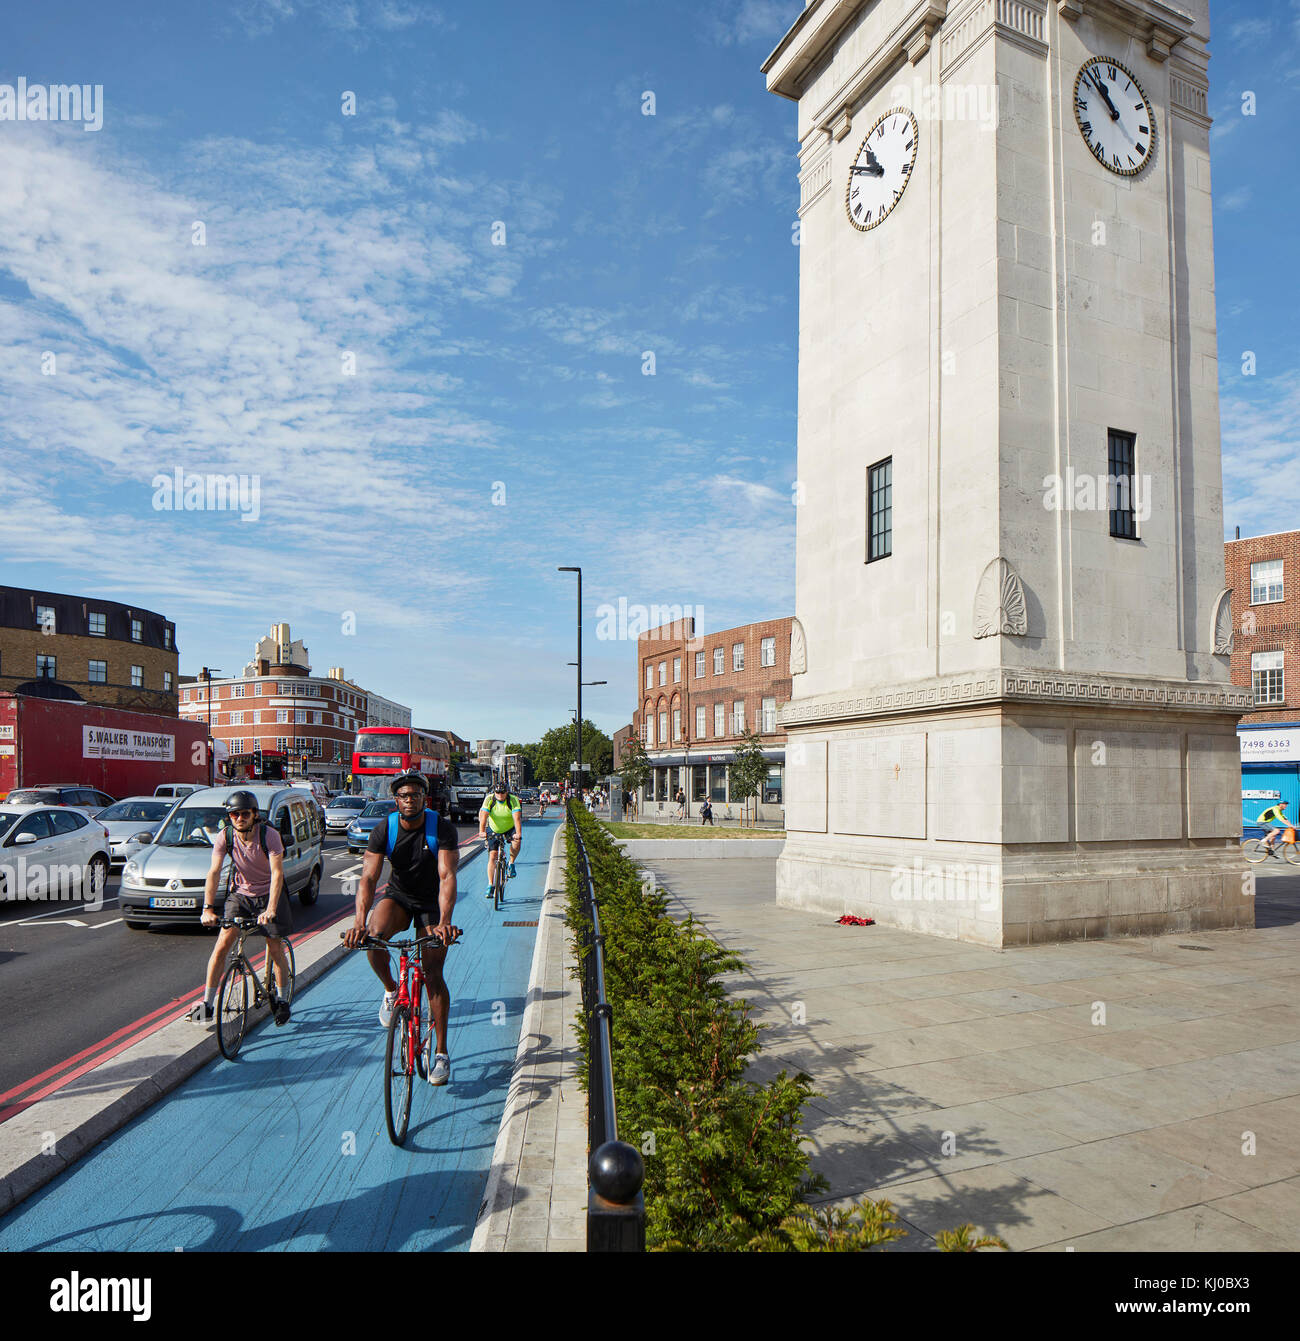 Stockwell War Memorial with bicycle lane. Stockwell Framework Masterplan, London, United Kingdom. Architect: DSDHA, - Stock Image